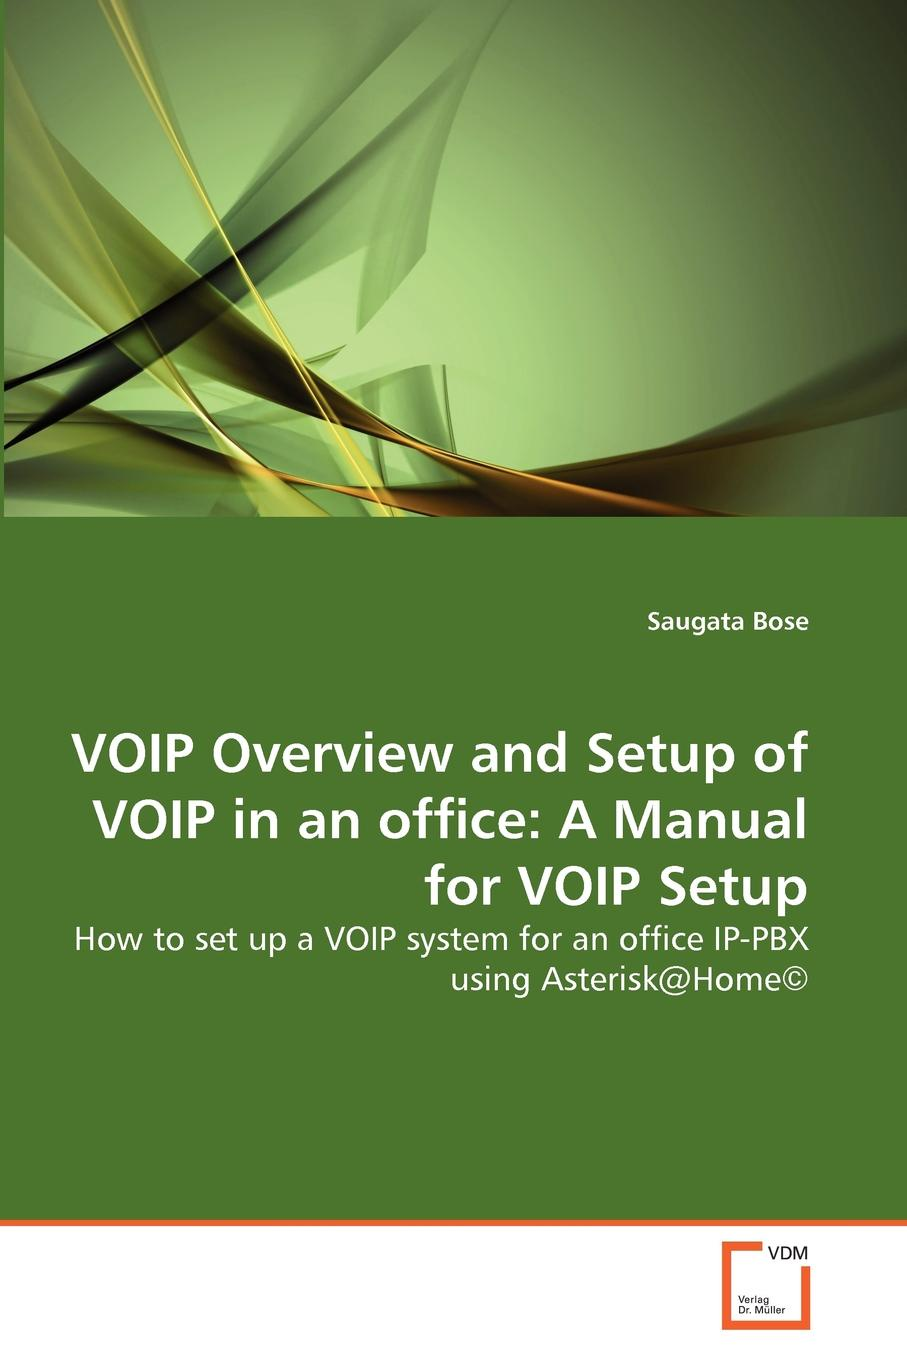 лучшая цена Saugata Bose VOIP Overview and Setup of VOIP in an office. A Manual for VOIP Setup